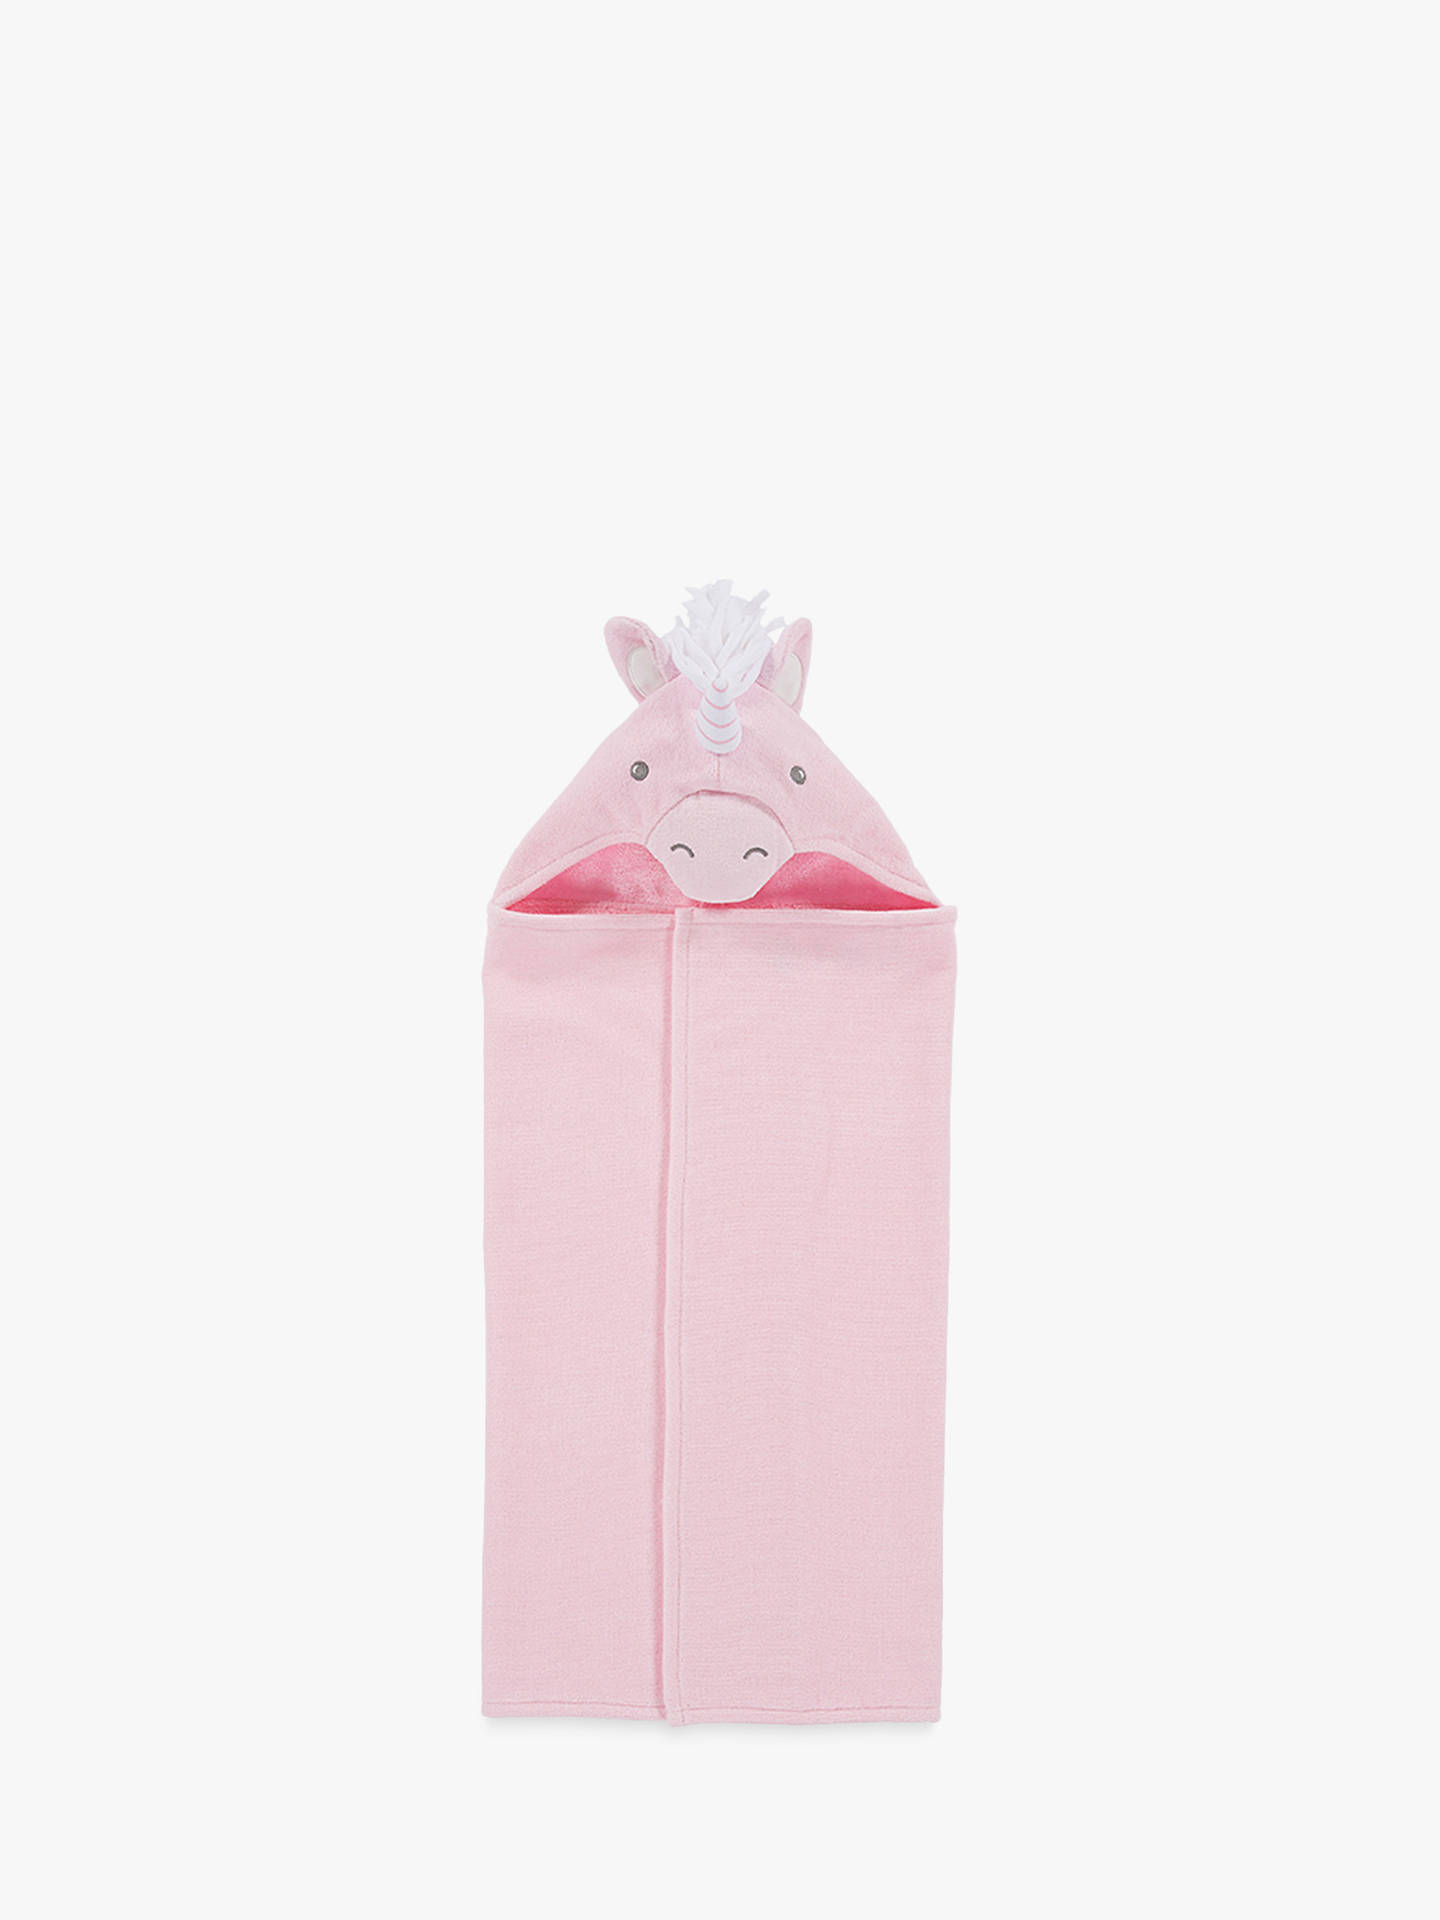 Buy Pottery Barn Kids Unicorn Critter Hooded Bath Towel, Pink Online at johnlewis.com